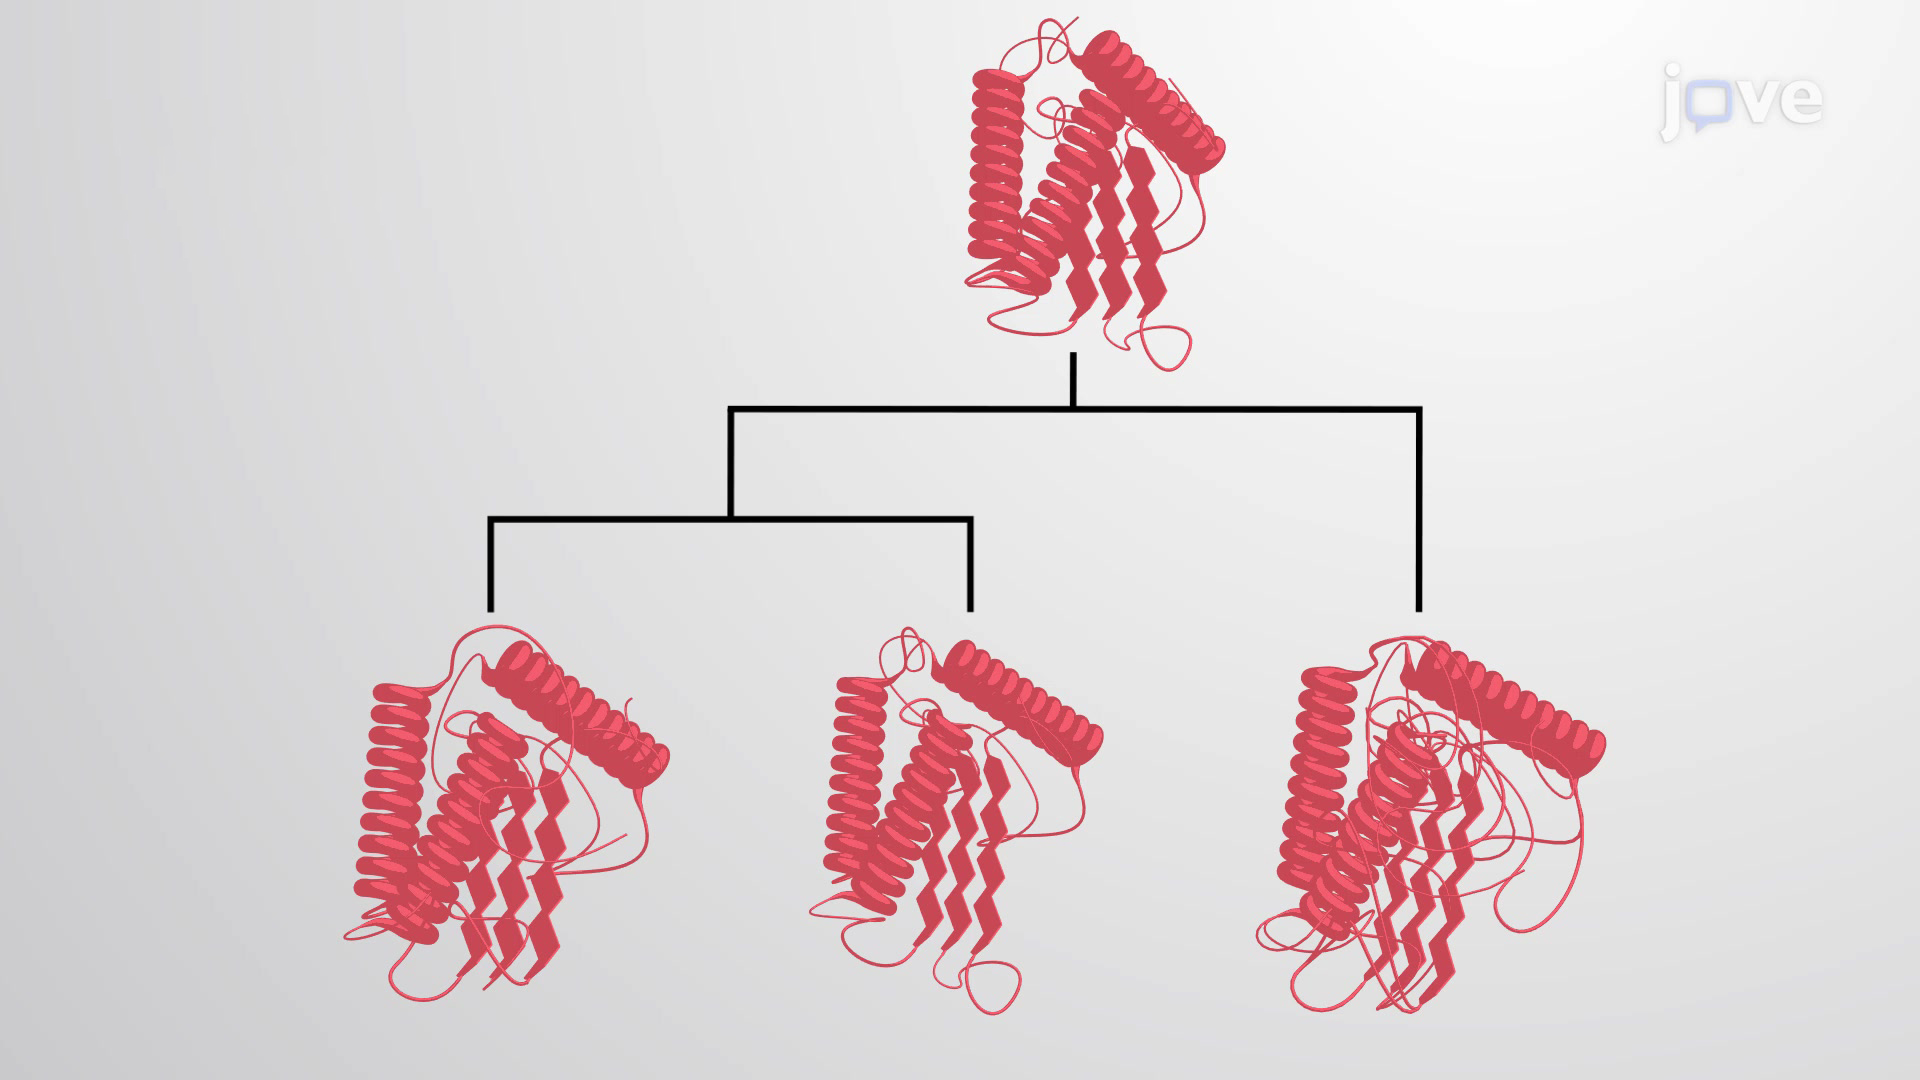 Protein Families